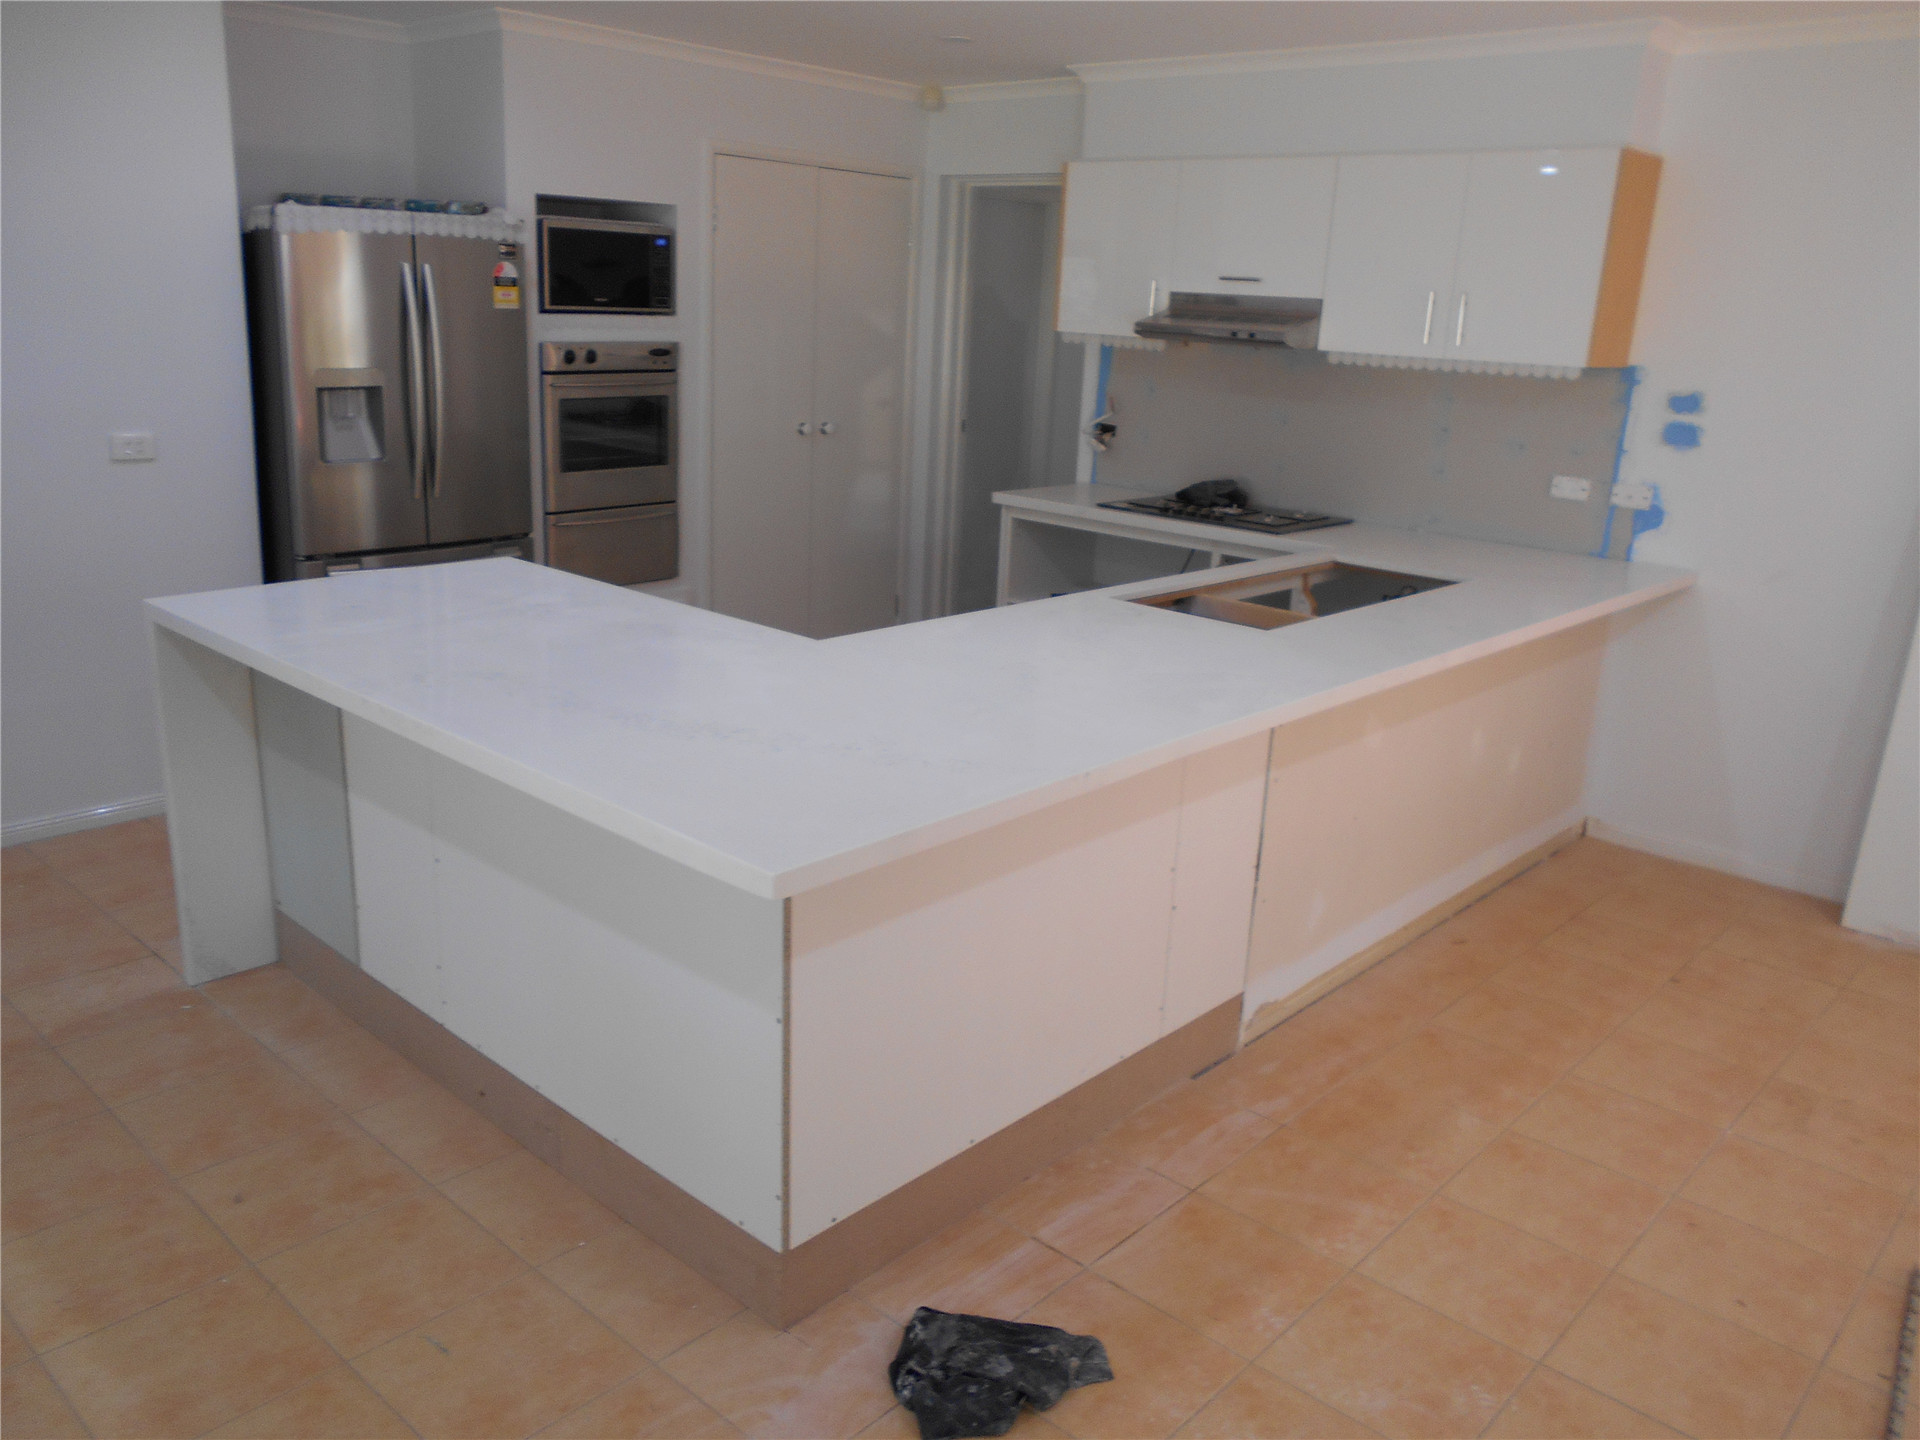 cheap stone benchtops Melbourne project image 9